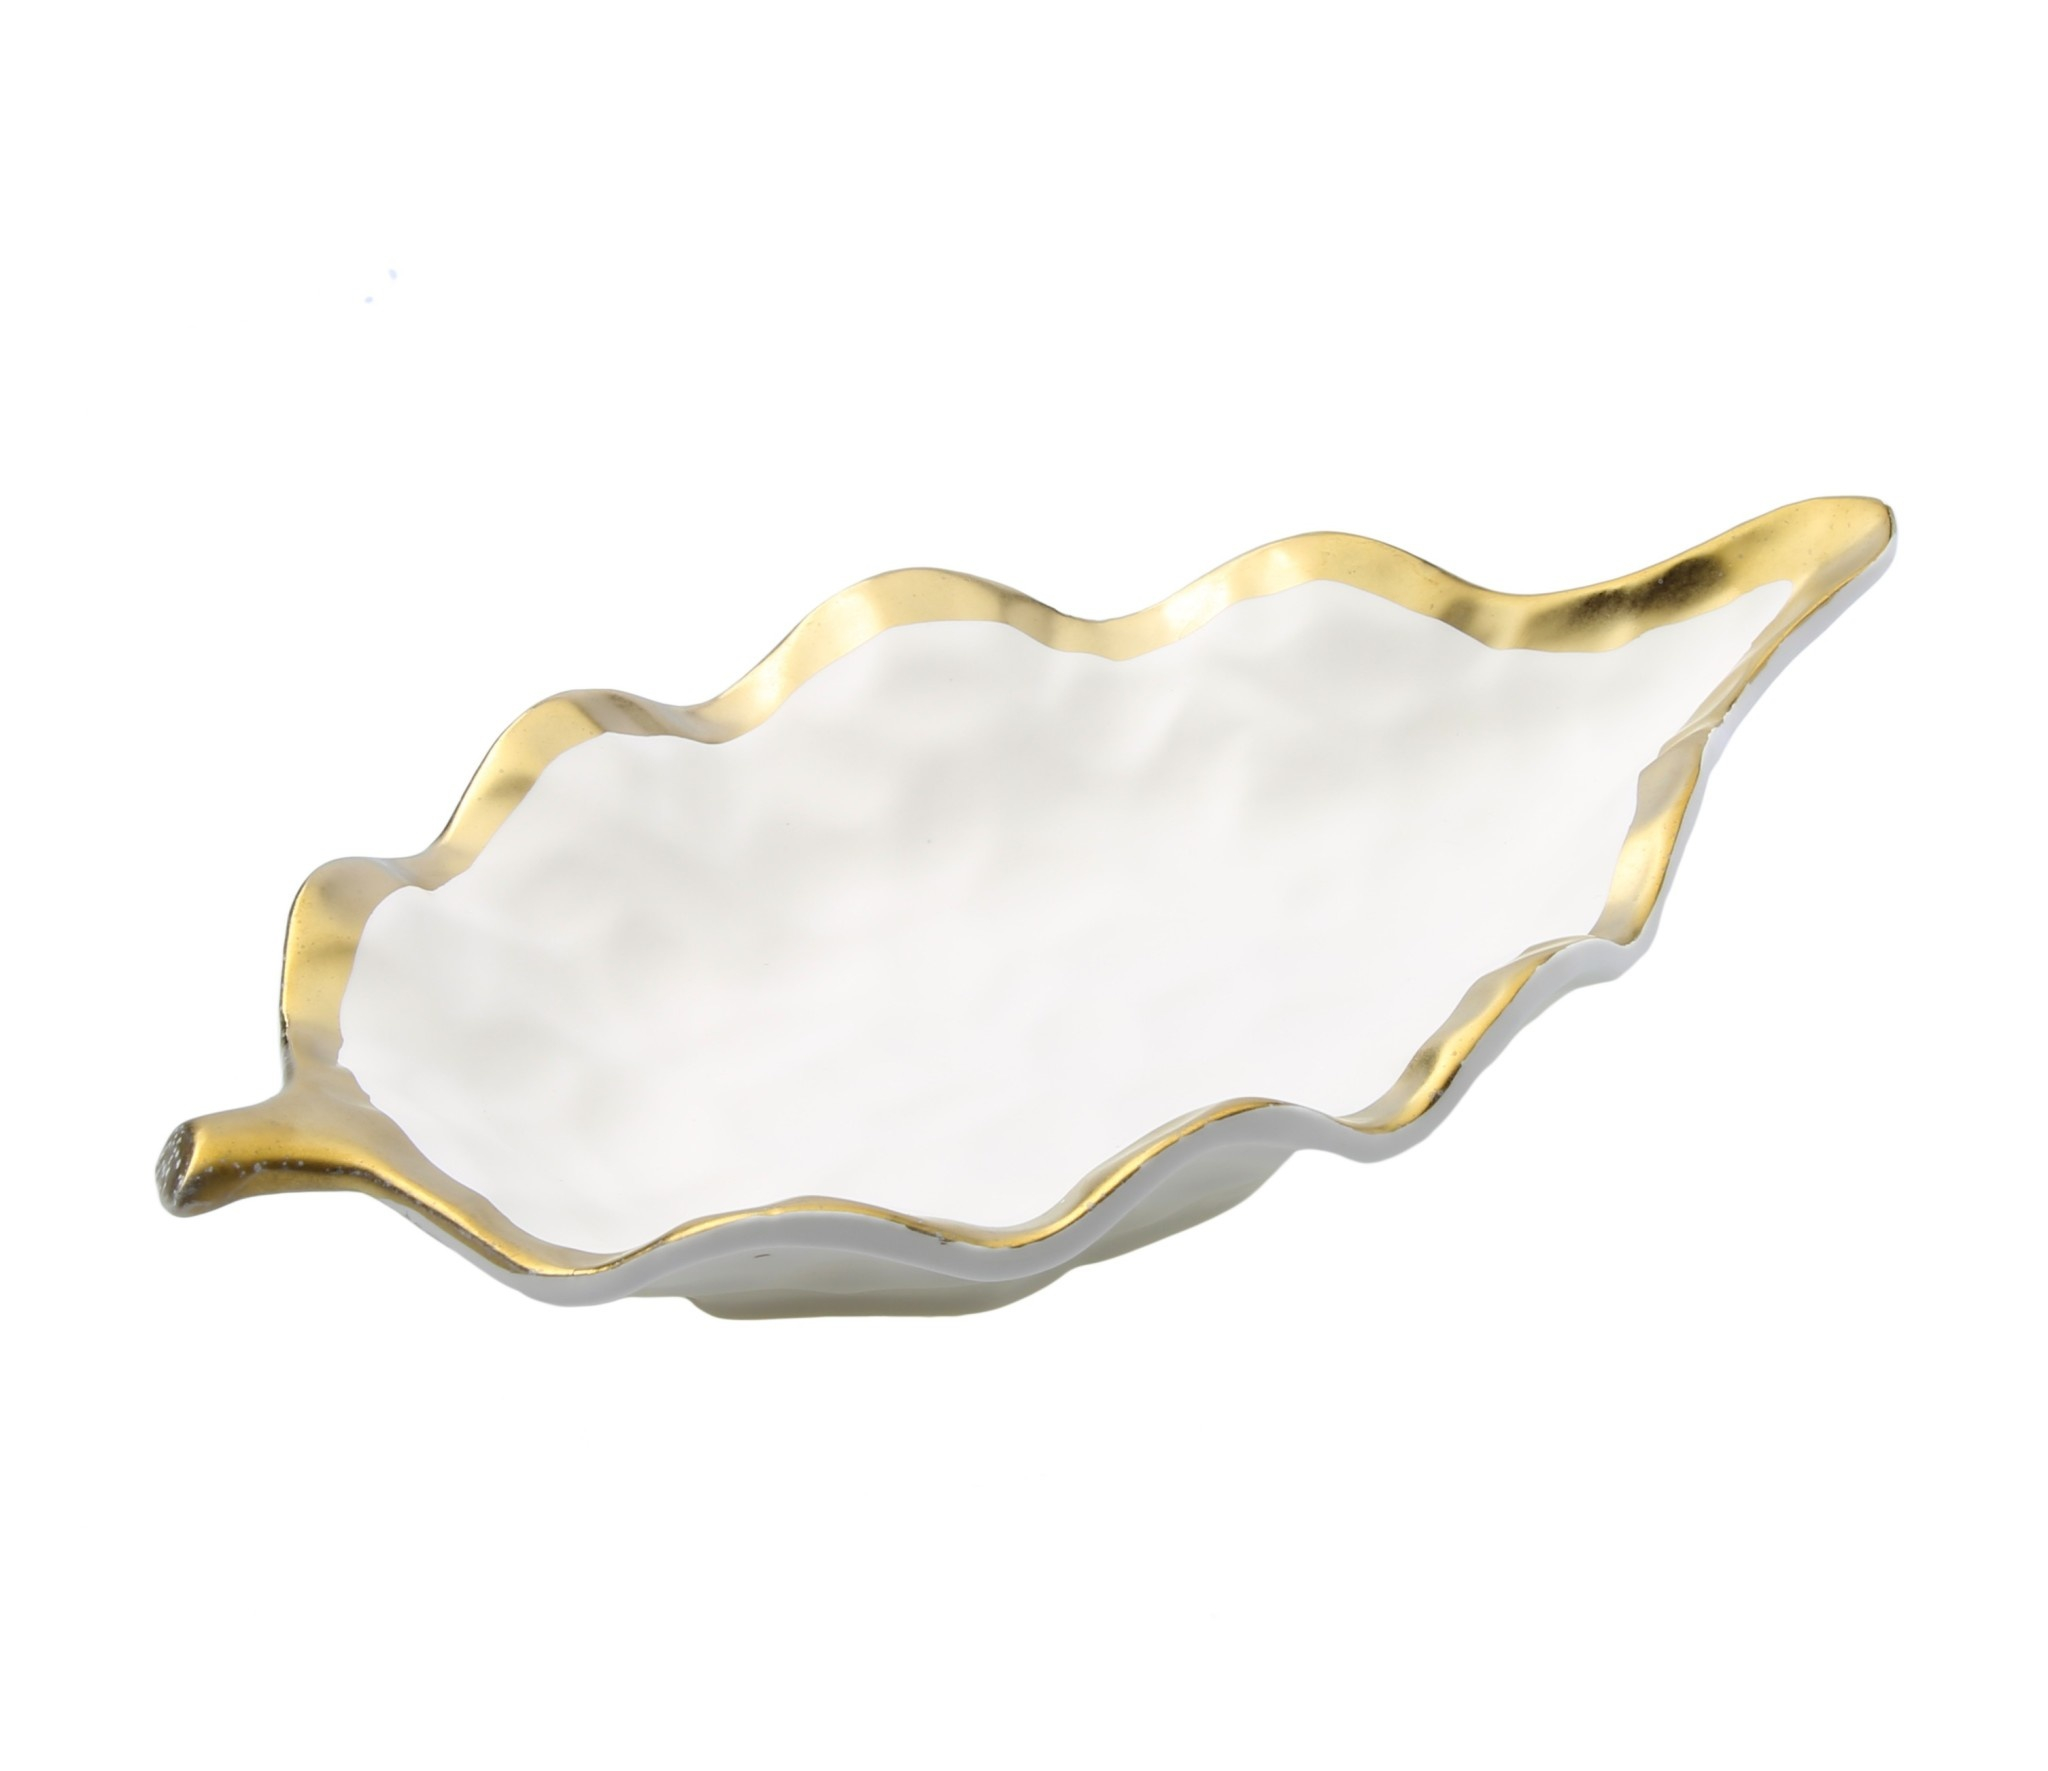 MM 2020 #03 Gold Leaf Tray- Thankful